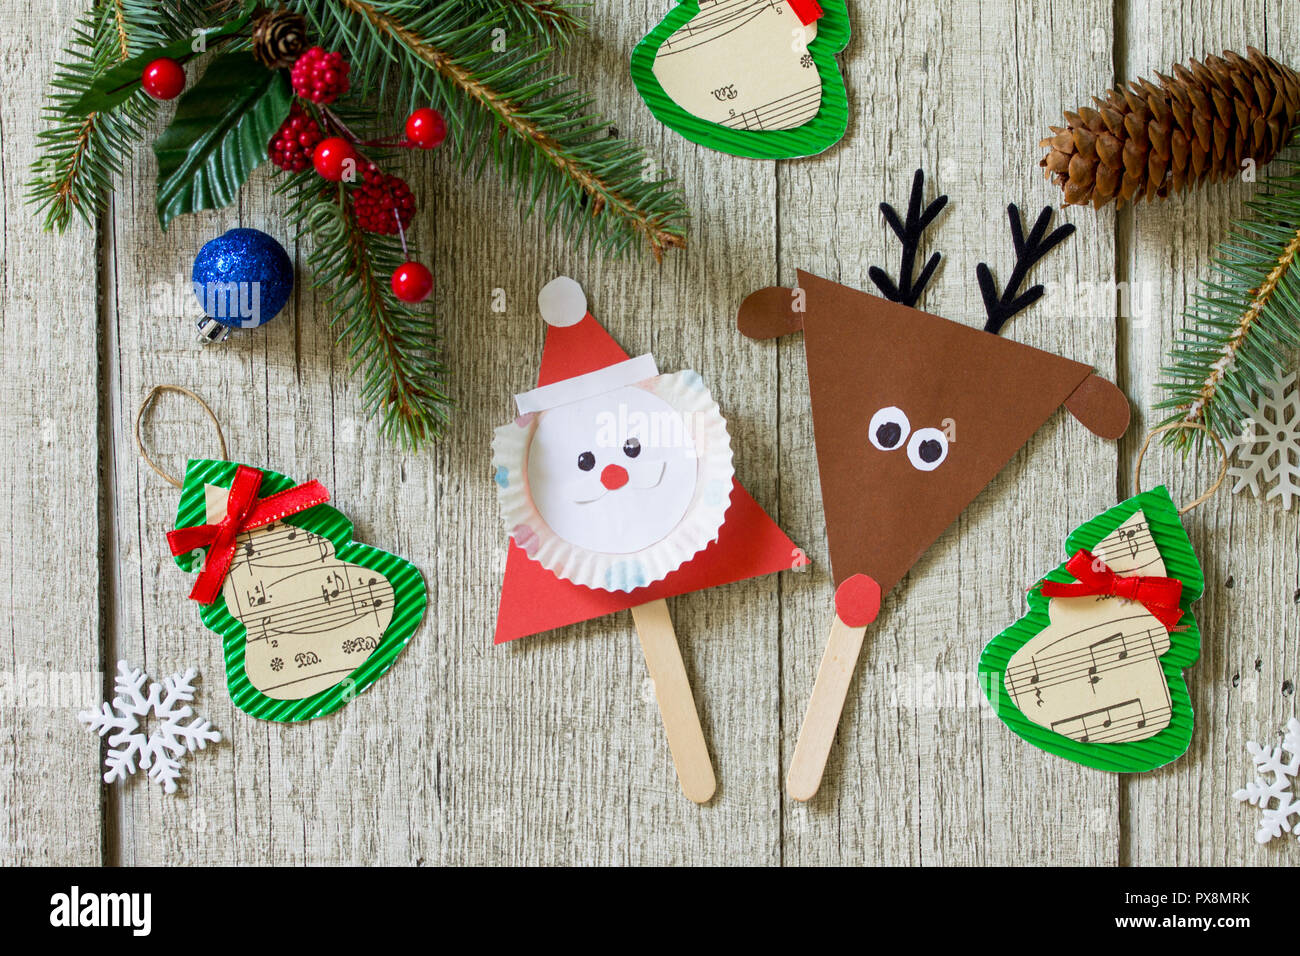 Christmas merry gift on wooden table - Santa, Reindeer and toys star ...